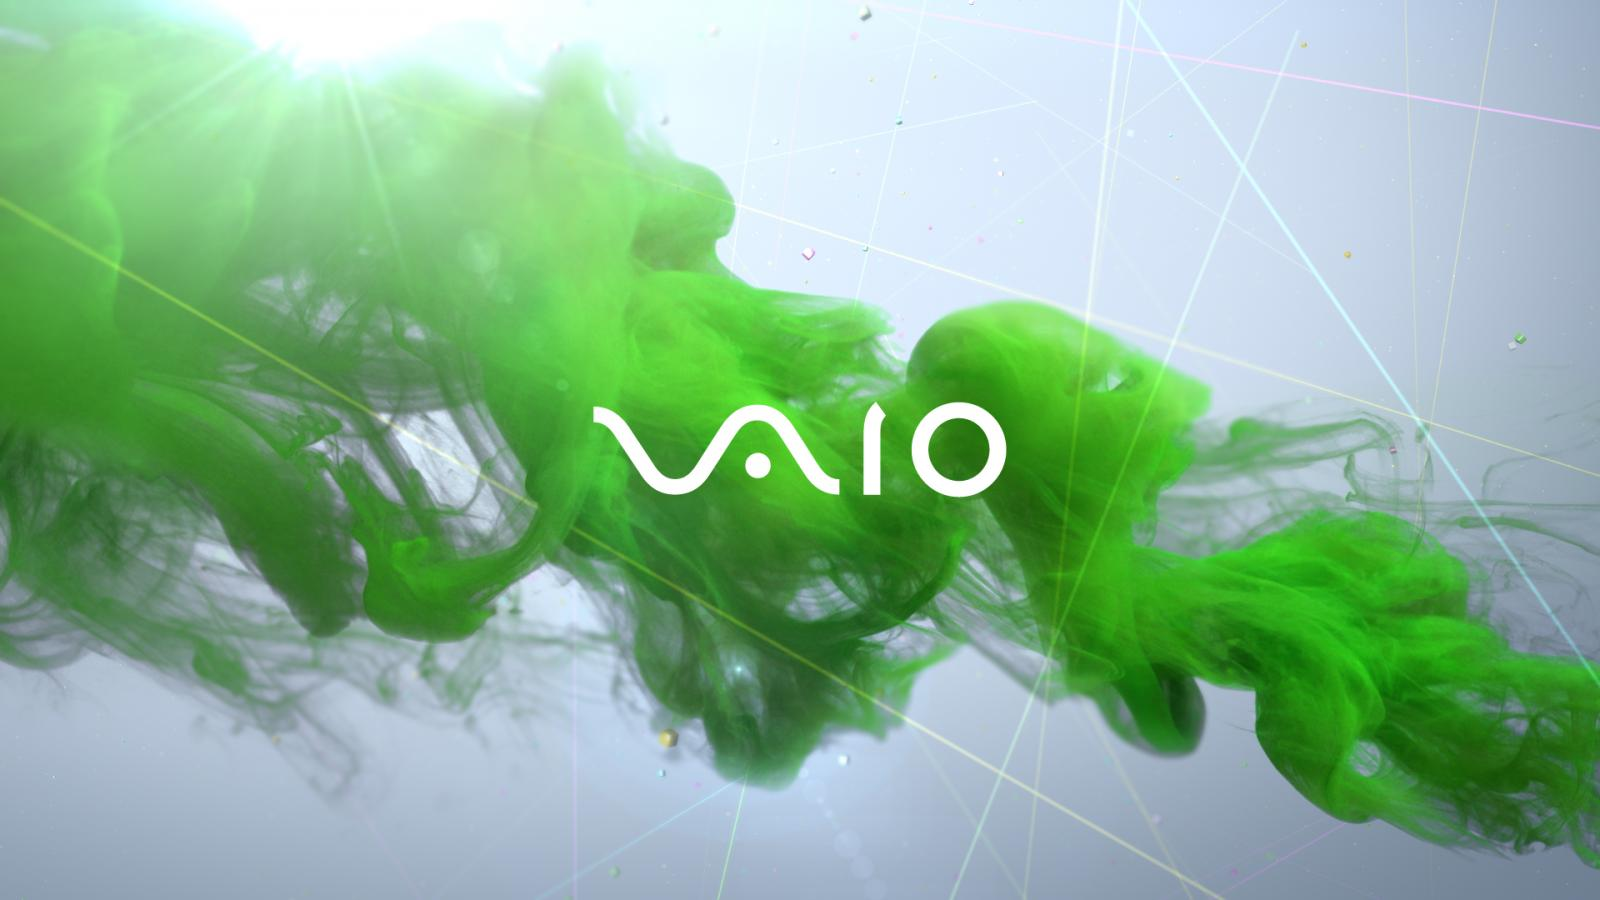 Guitar Hd Wallpapers 1080p Yourforum Gt Gallery Gt Viewing Image Gt Vaio 11 Img2